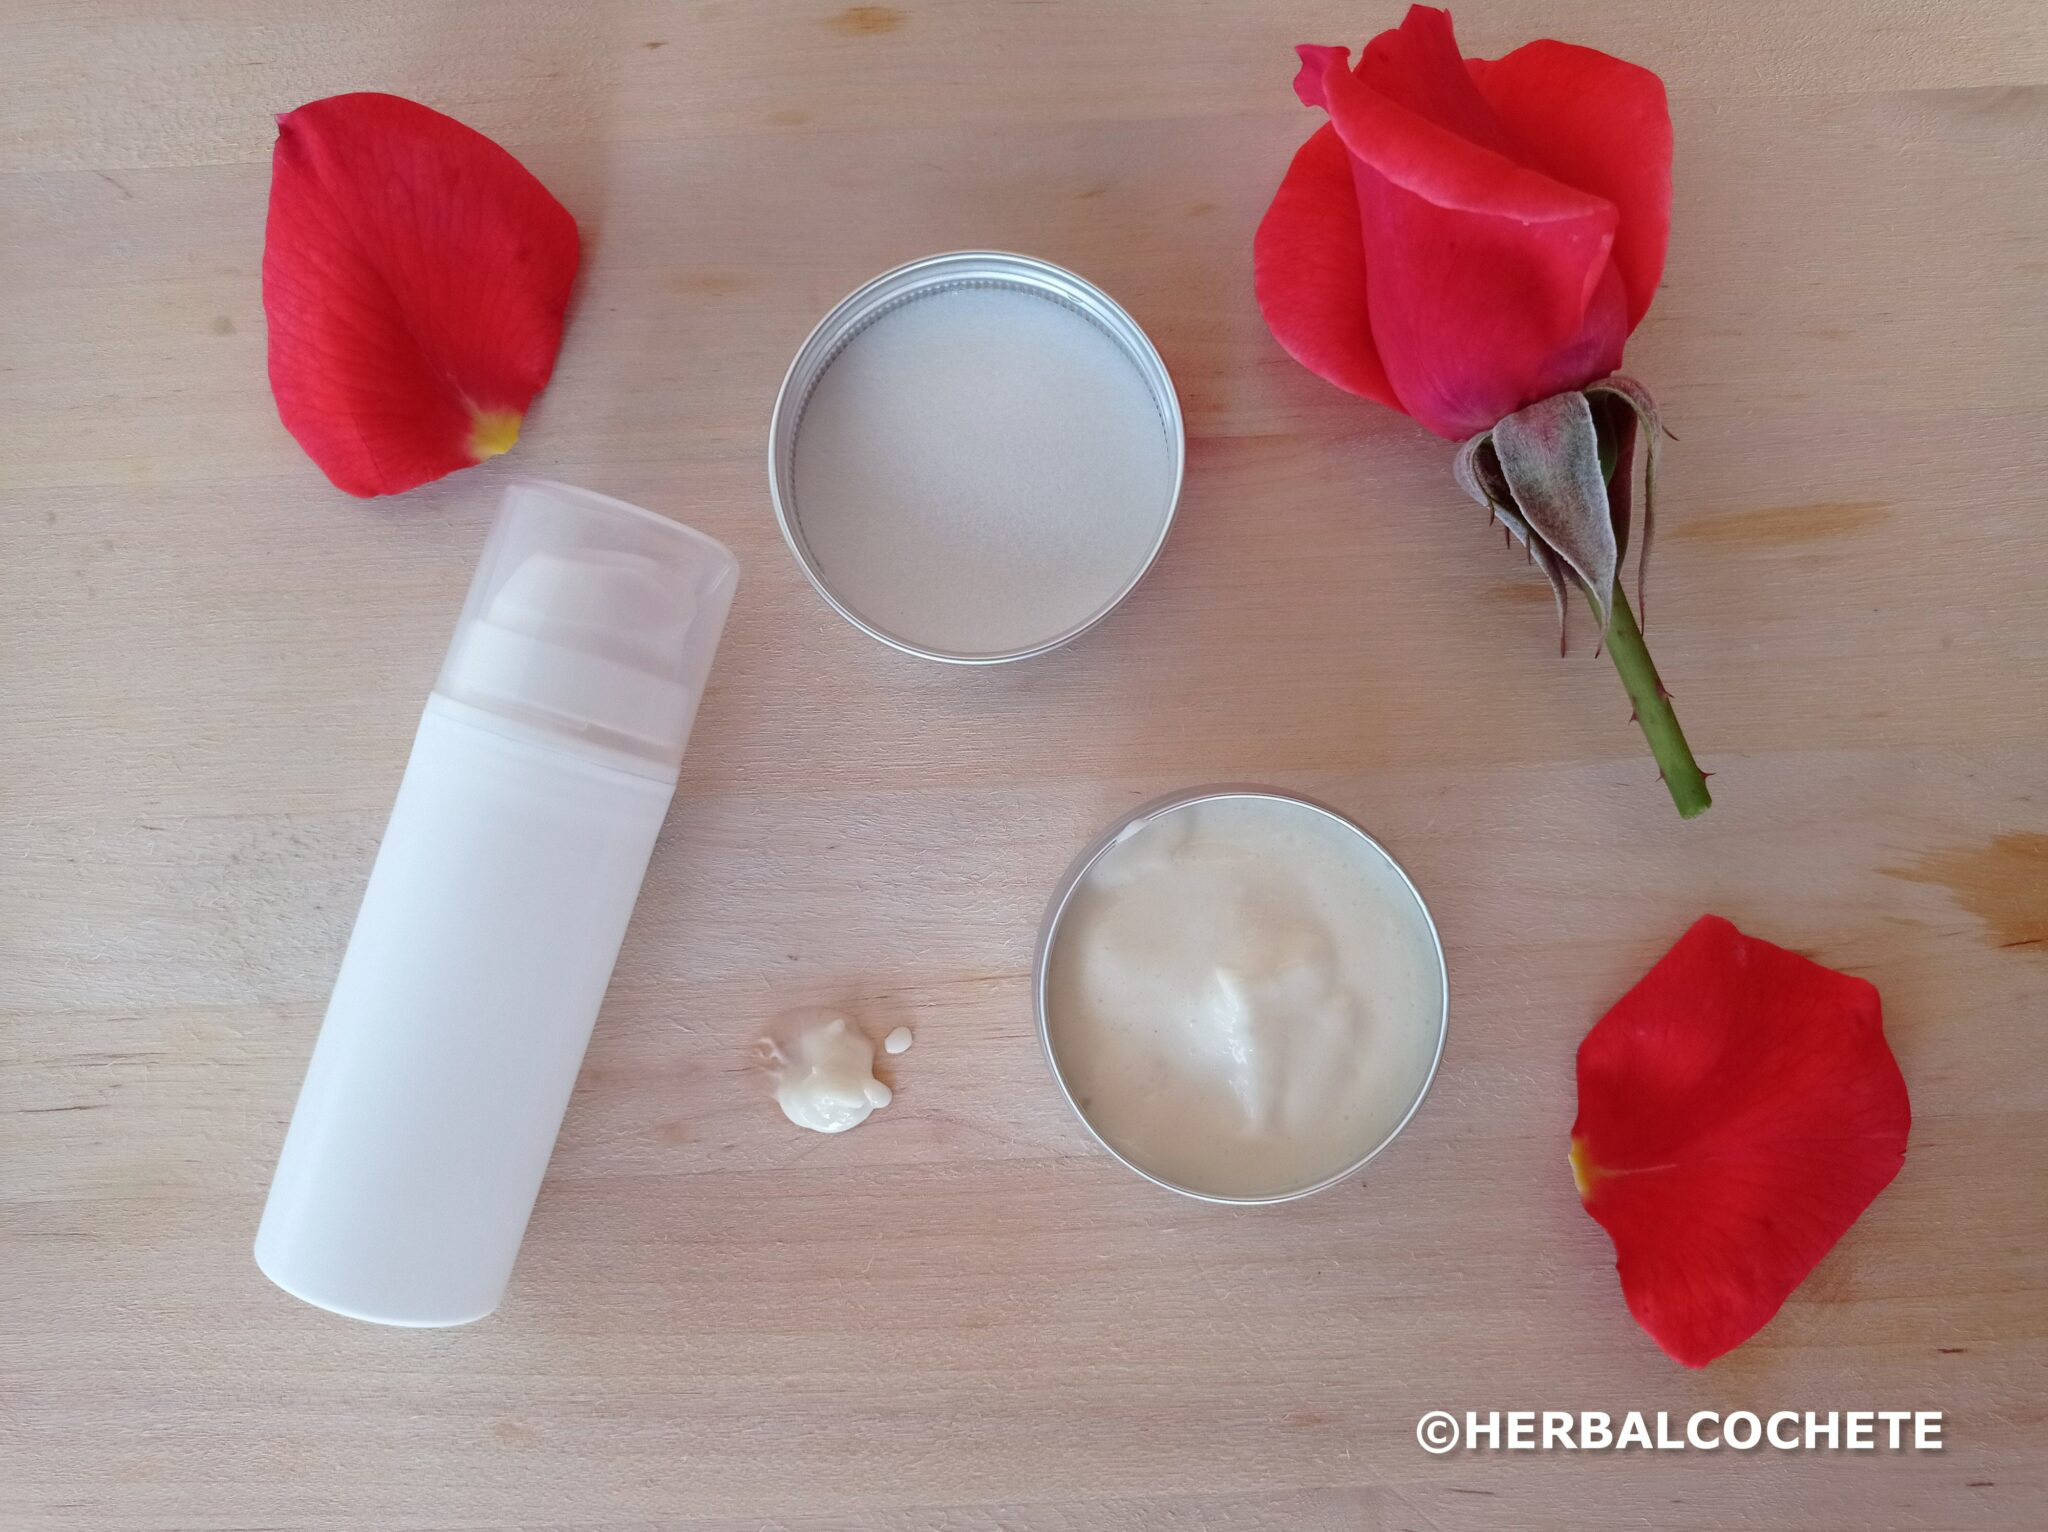 airless bottle and cosmetic tin can with homemade face lotion, decorated with rose petals